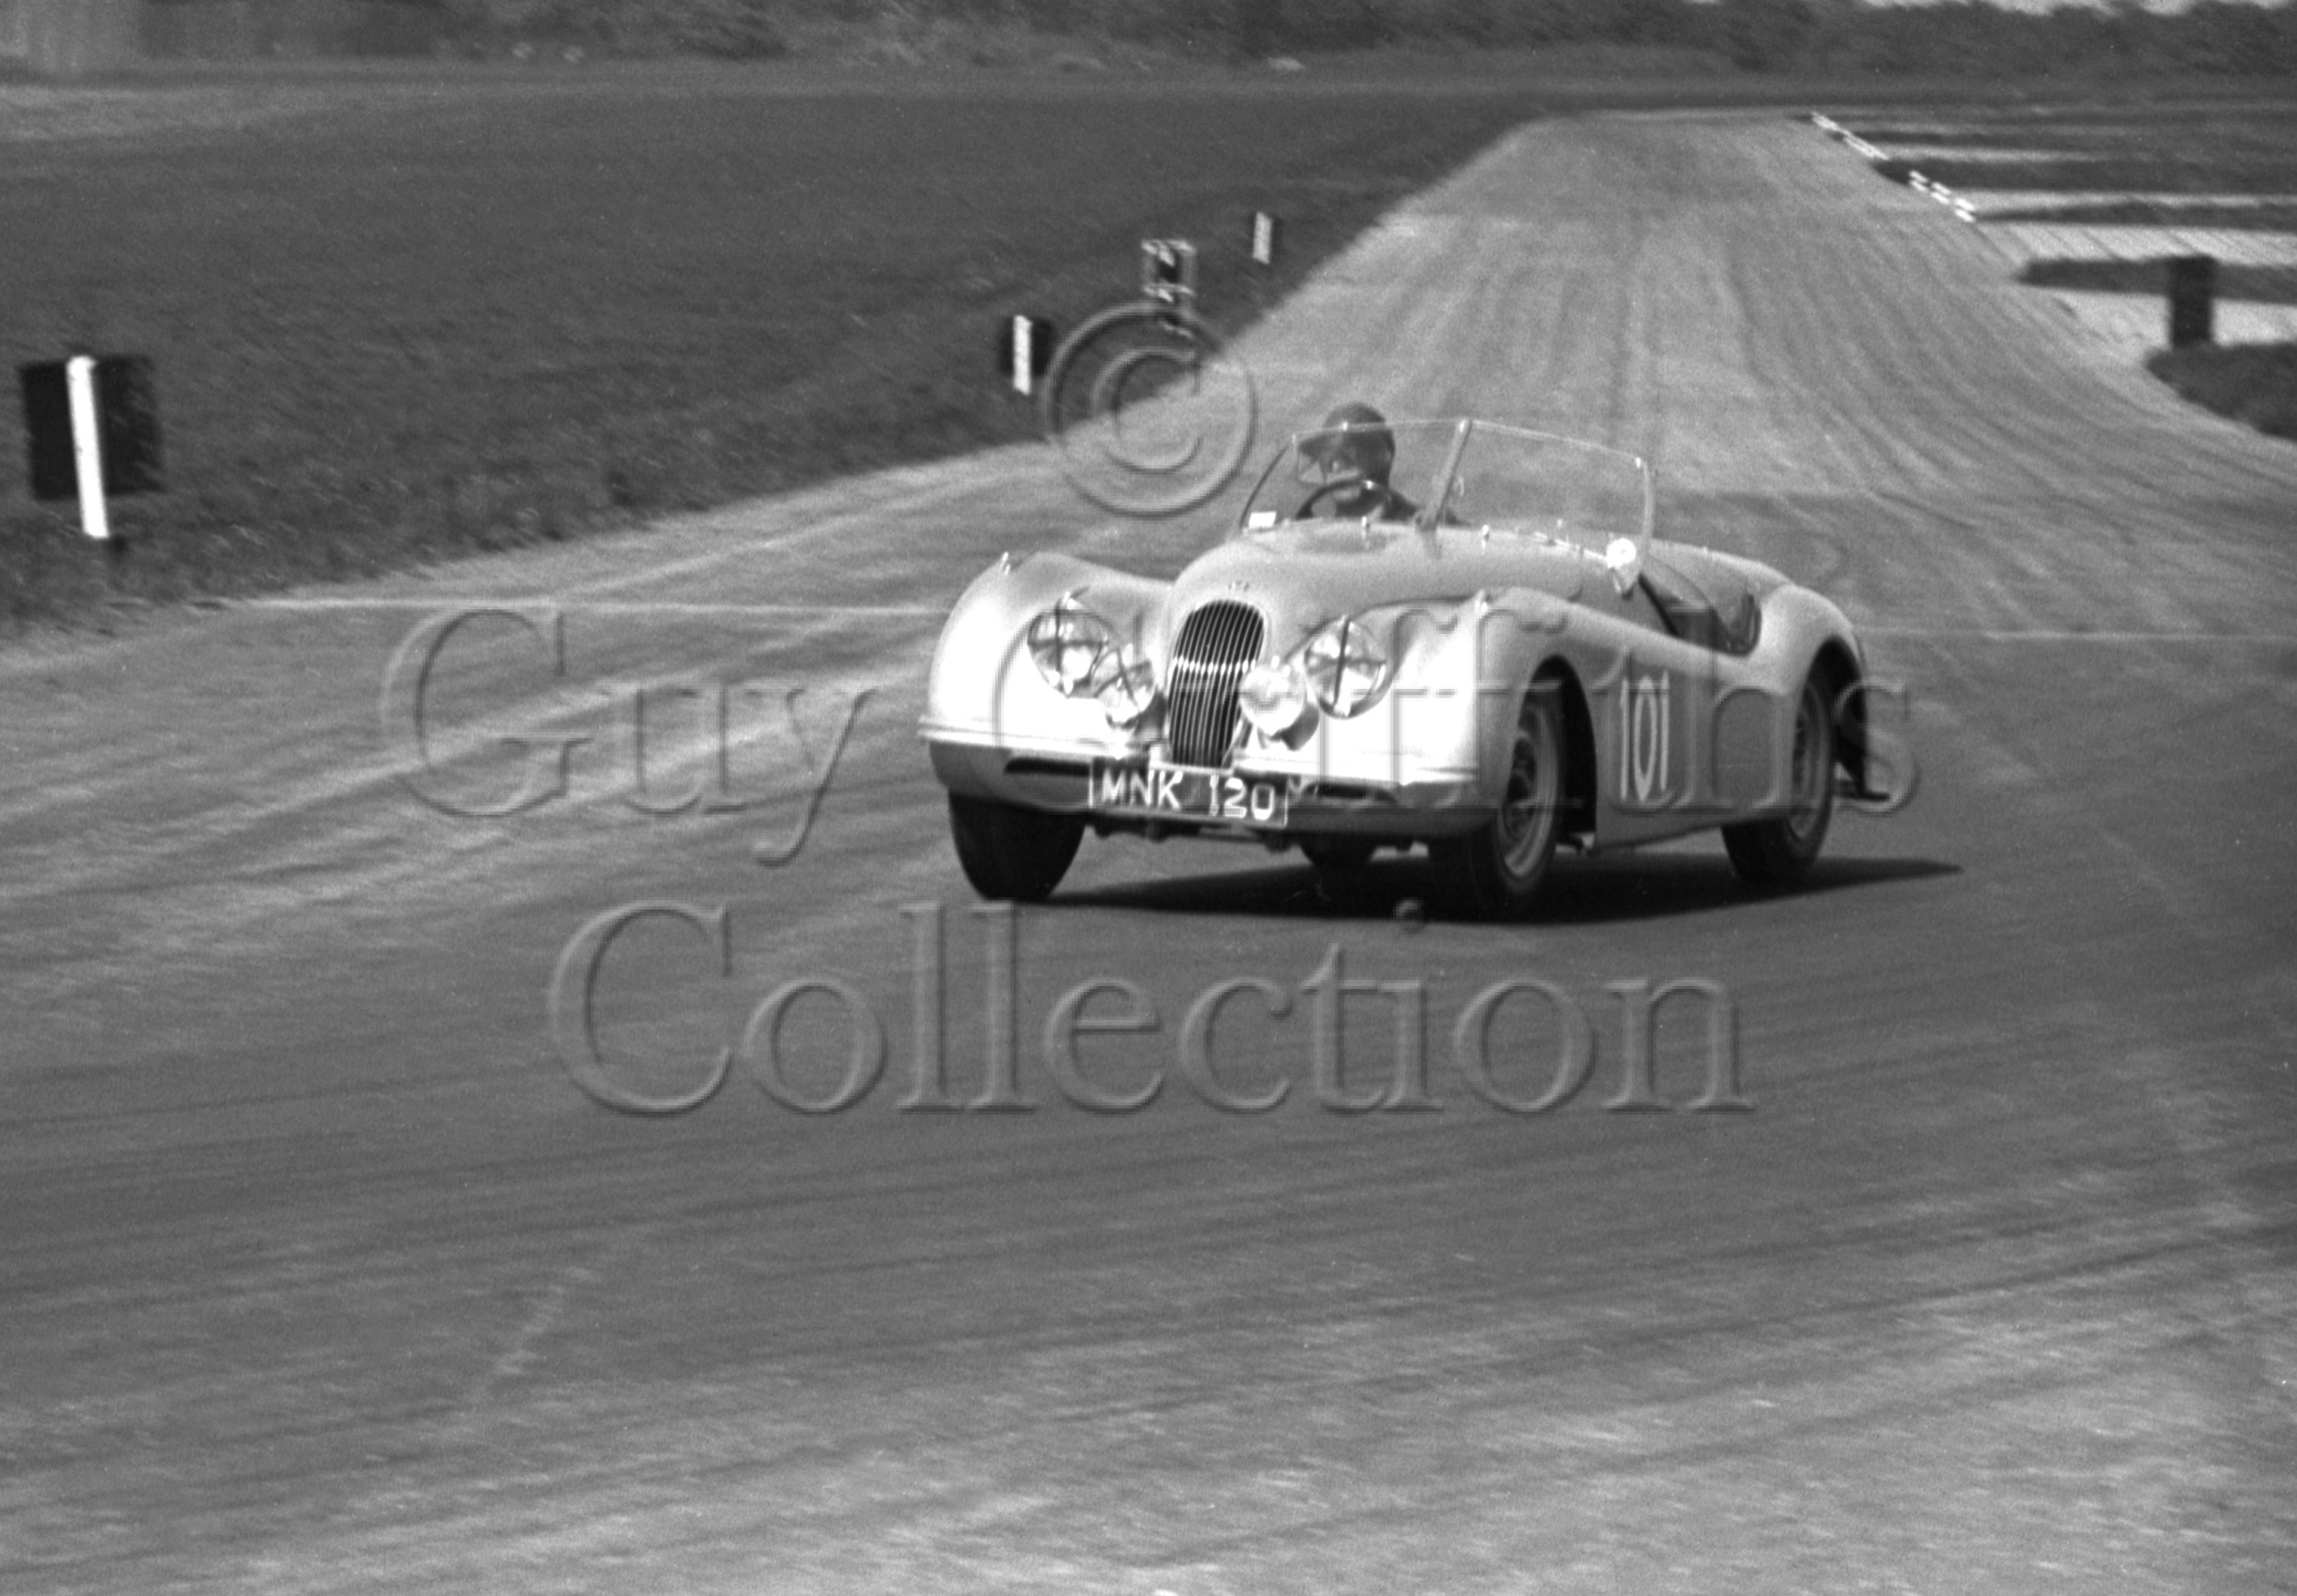 45-103–D-Russell–Jaguar–Silverstone–02-06-1951.jpg - The Guy Griffiths Collection